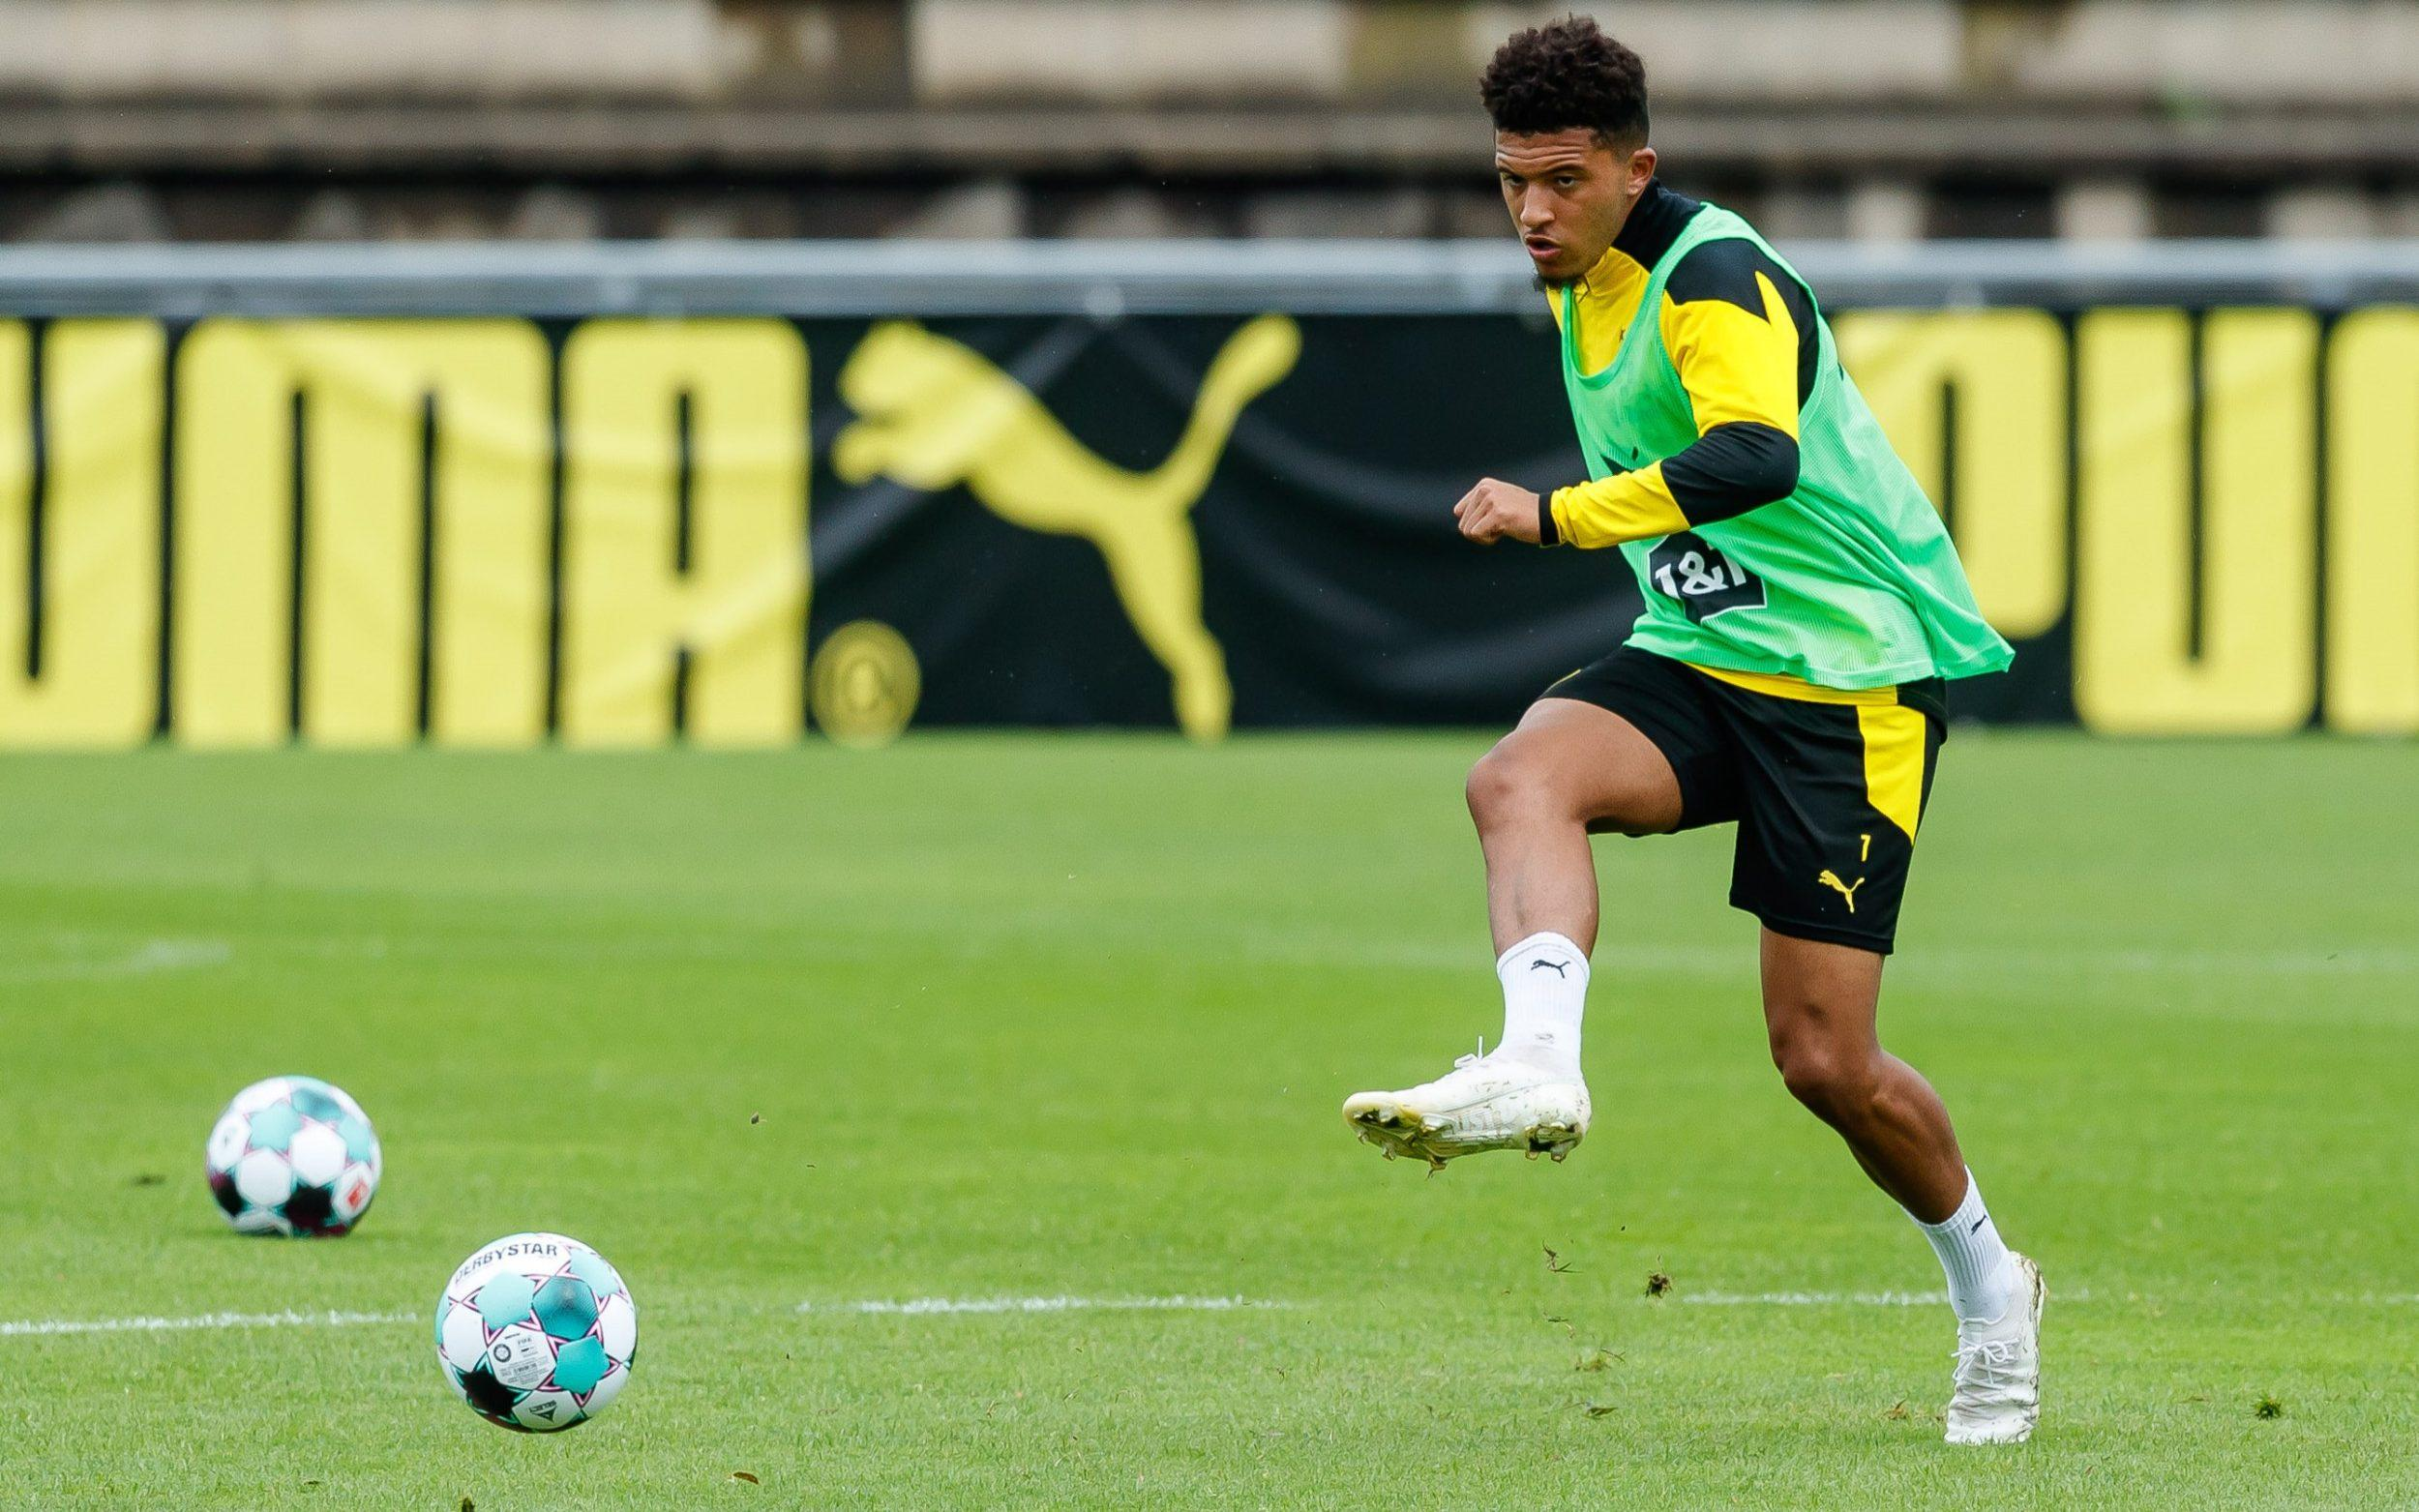 Jadon Sancho in Borussia Dortmund training - Getty Images